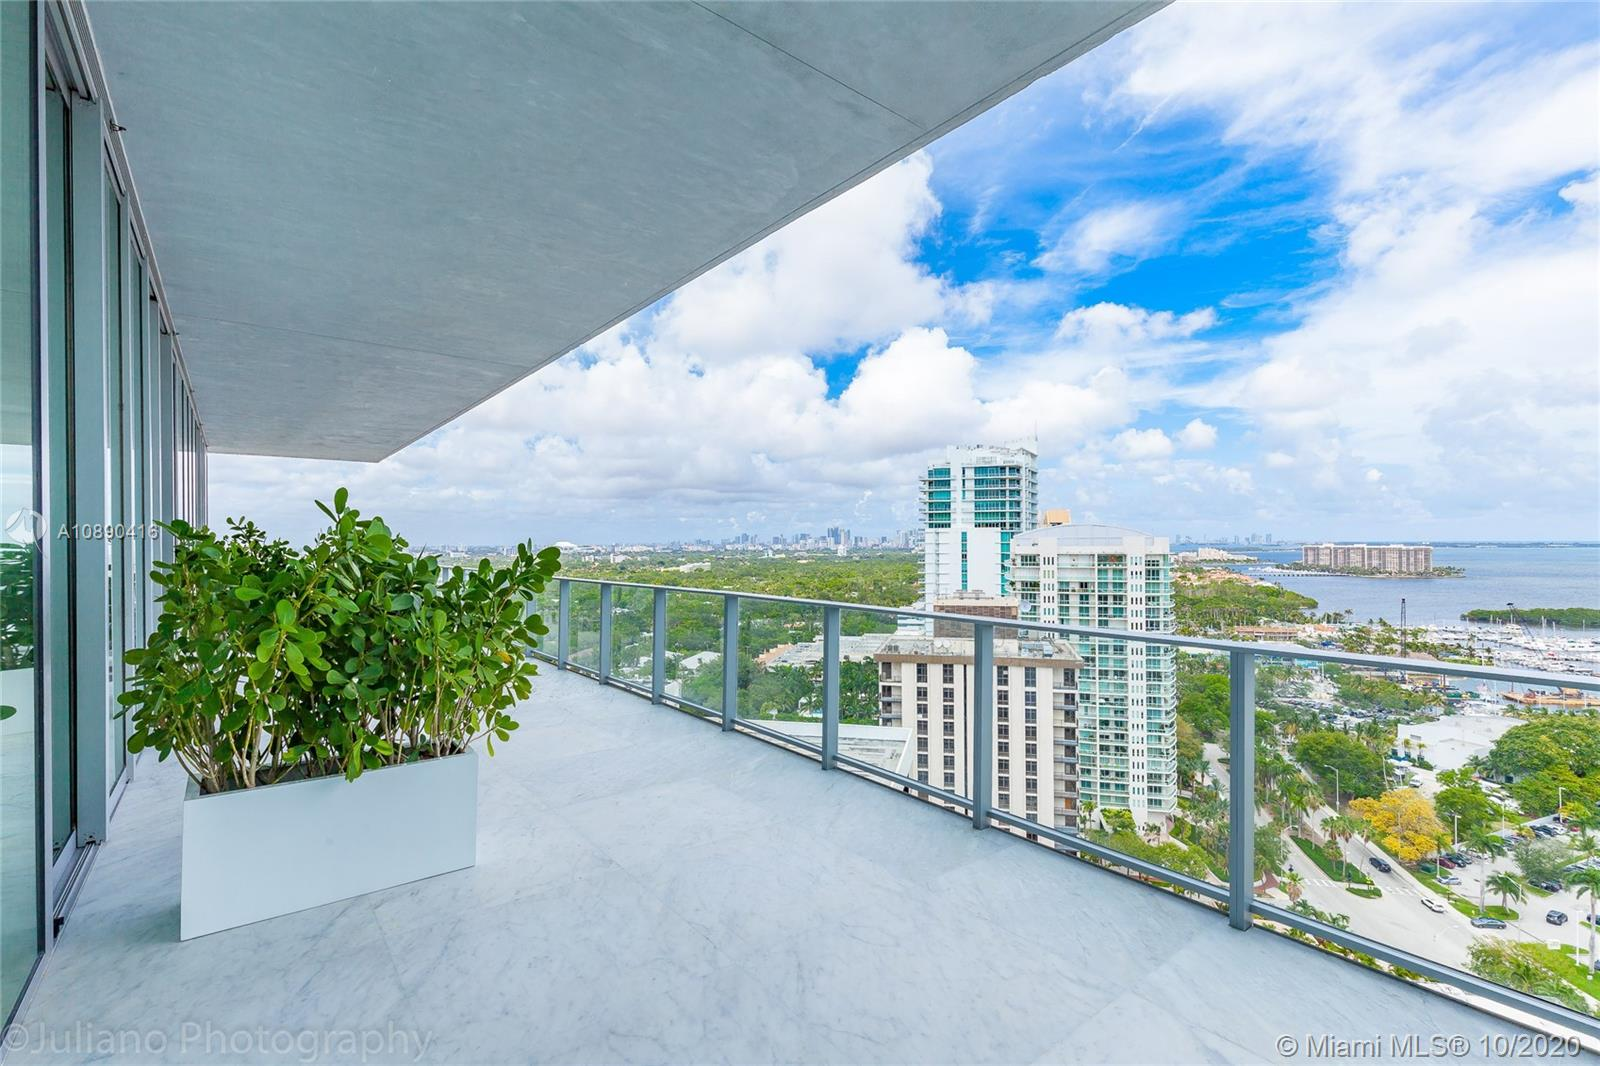 Grove at Grand Bay is an architectural masterpiece.  PH1902N is a Stunning 19th floor, 5213 SF residence.  This 5 BR, 6/1 BTH residence has a 12 FT high ceilings & 12 FT deep terraces offering 180 degree views of Coconut Grove and Biscayne Bay. Beautifully finished with marble floors throughout, wood paneling, marble master bath and Miele appliances. Fully furnished.  Three parking spaces!  Residence offers over 60 FT of frontage.  Amenities include 2 swimming pools, spa, fitness center, children's playground and pet spa. A must see.